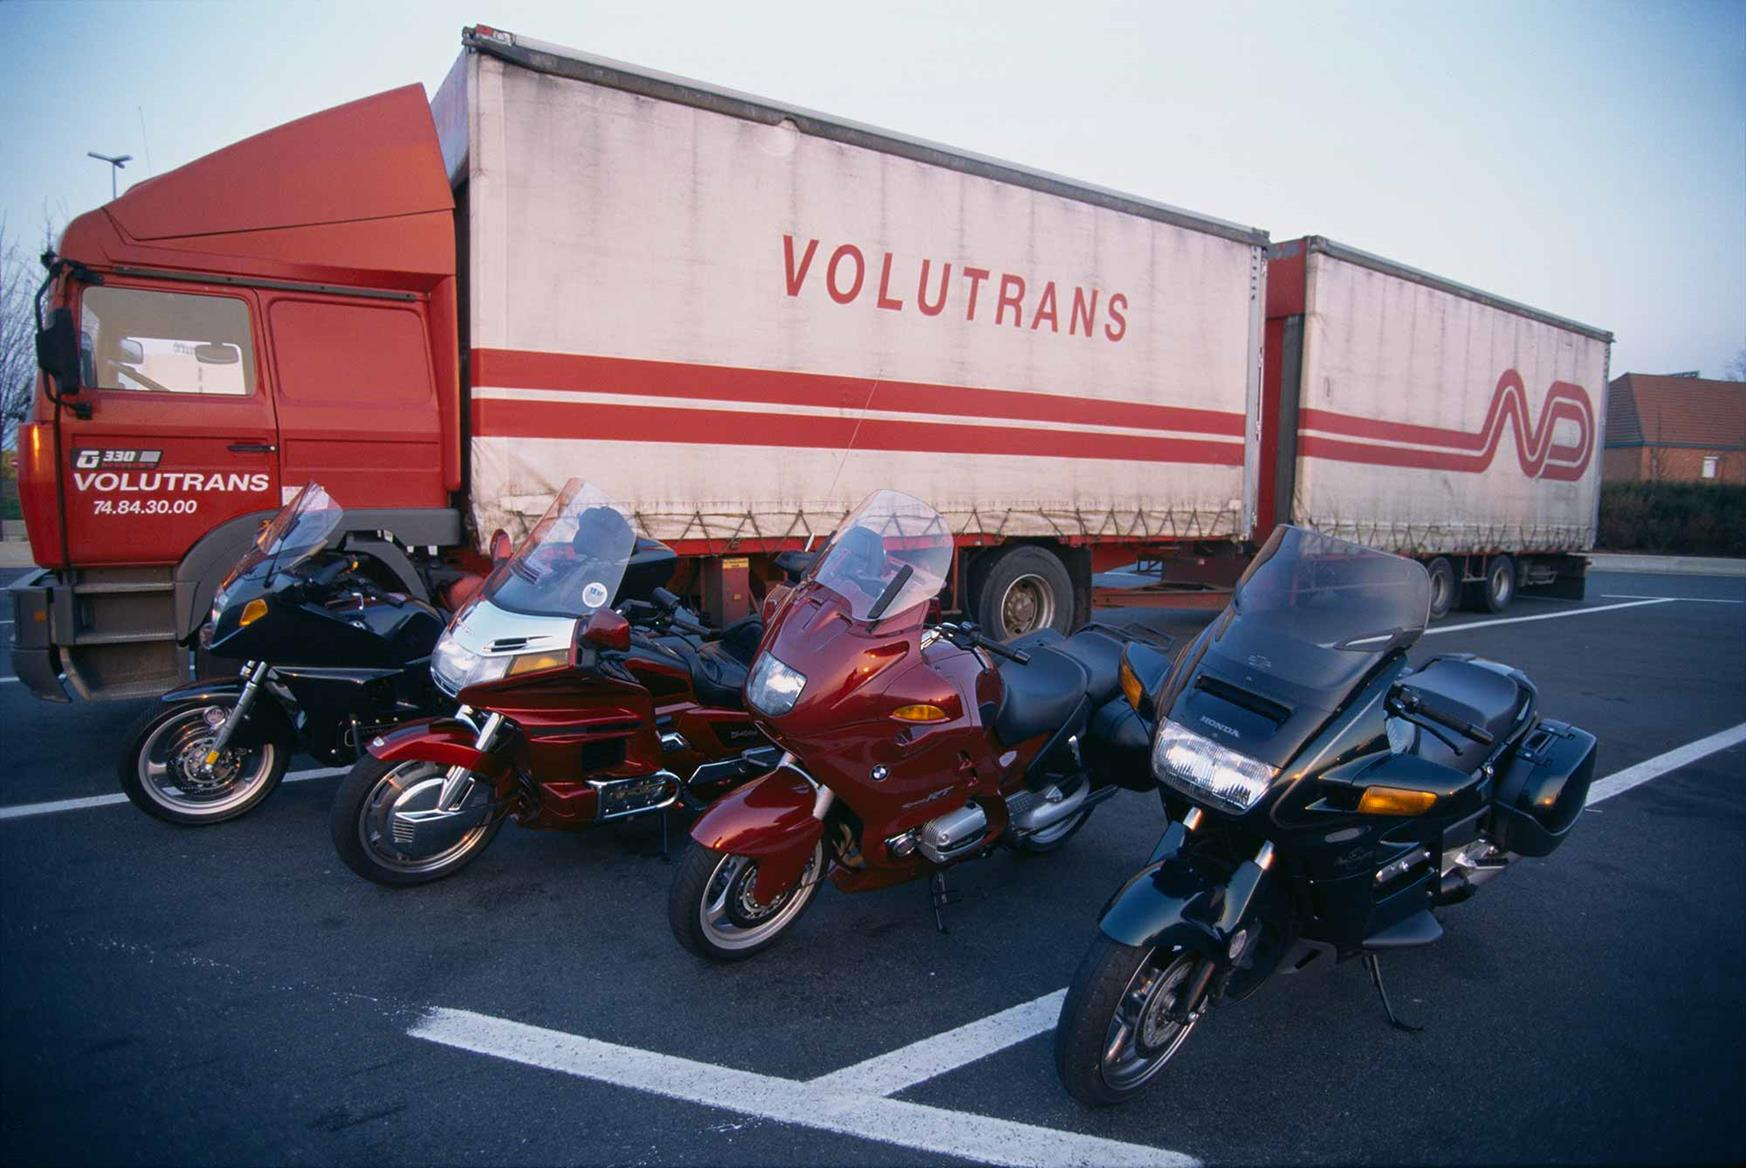 The GL1500 sits alongside its rivals on an MCN road test